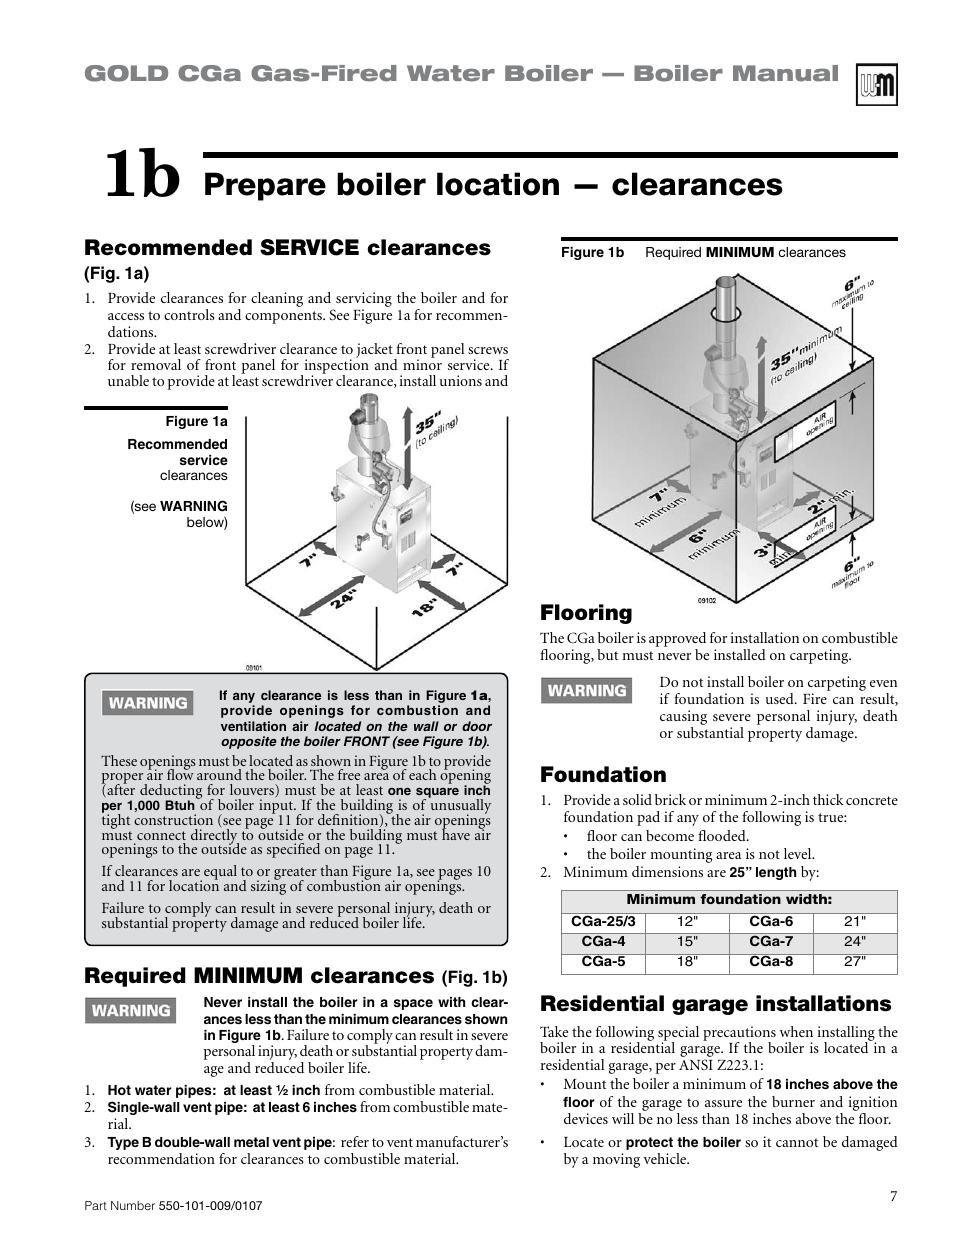 Prepare boiler location — clearances, Gold cga gas-fired water ...